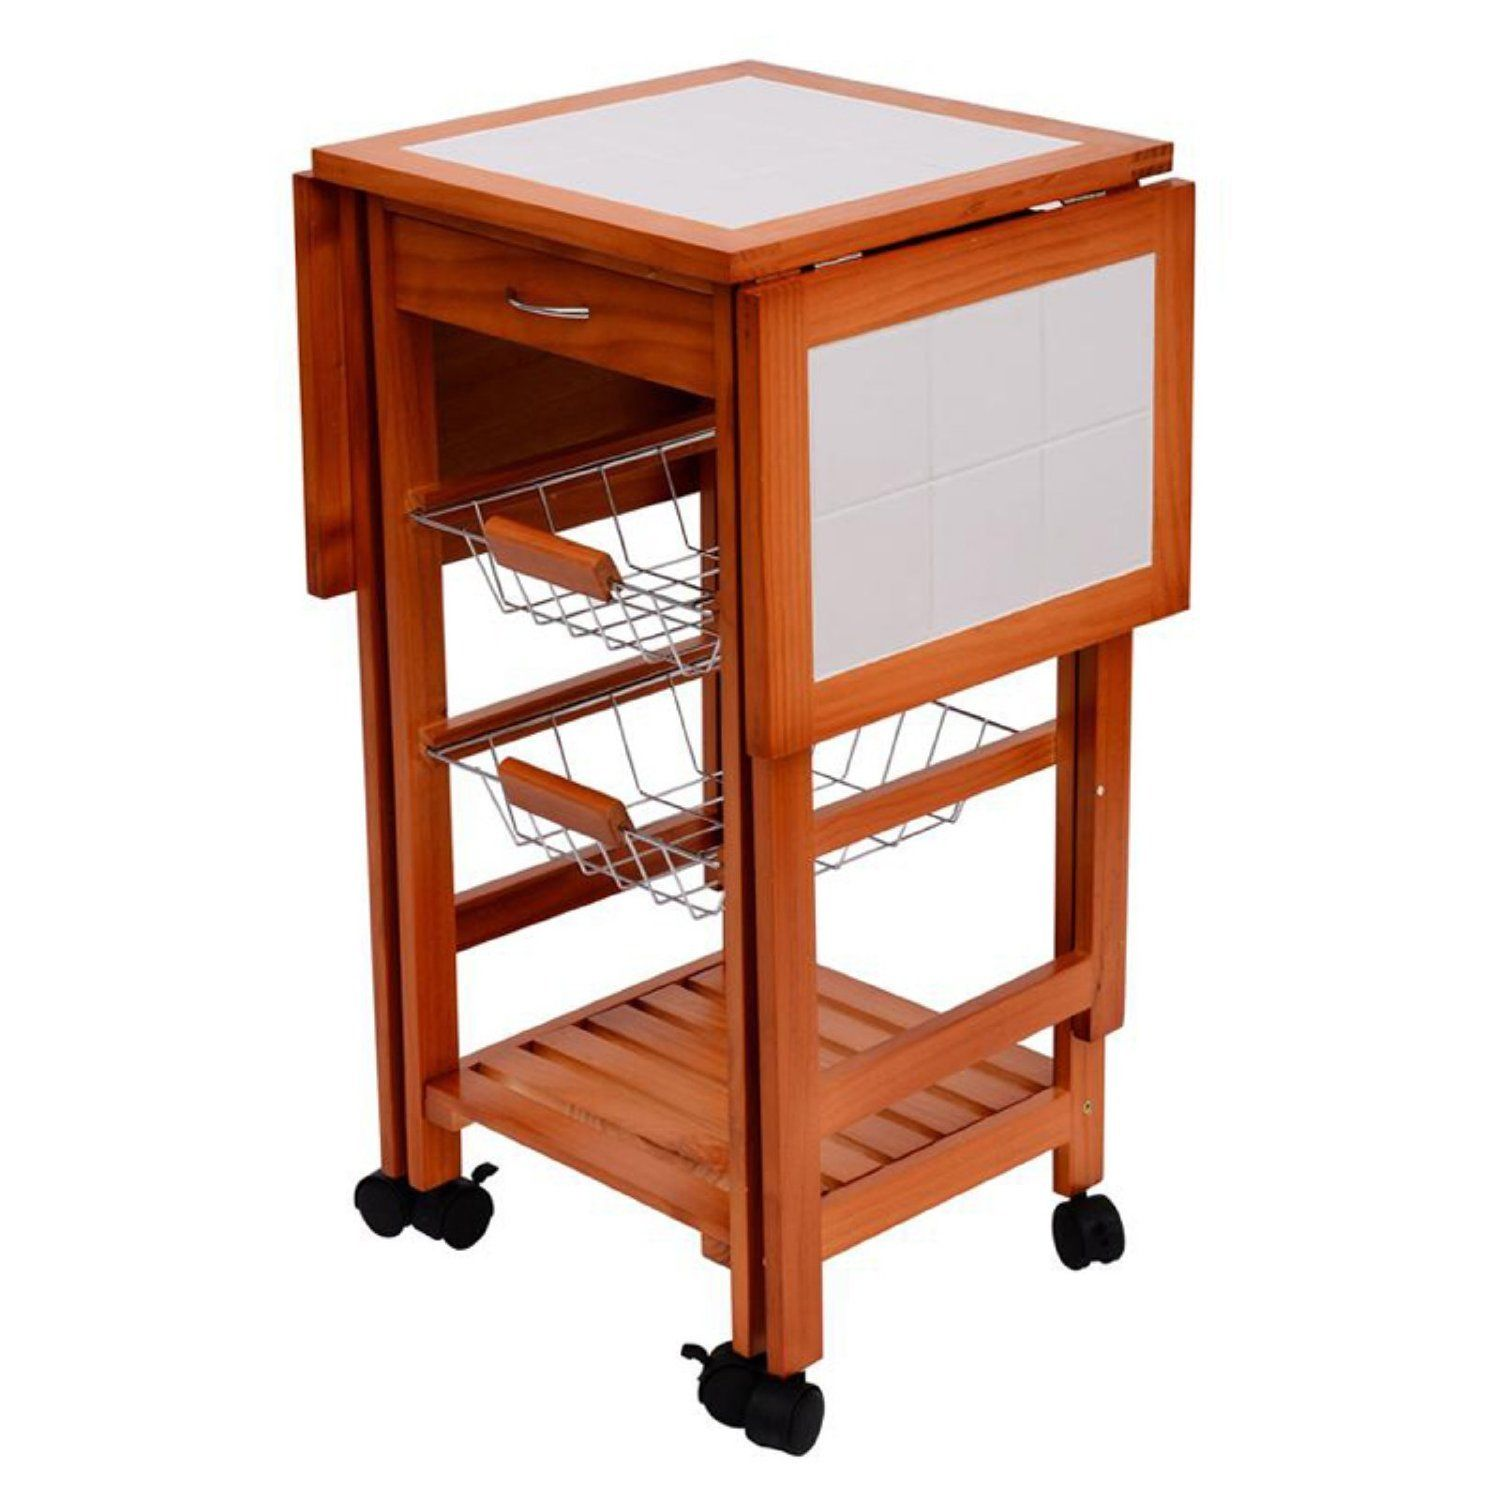 Portable Folding Wood Rolling Kitchen Island Trolley Cart Drop Leaf Top Storage 701698138258 Ebay